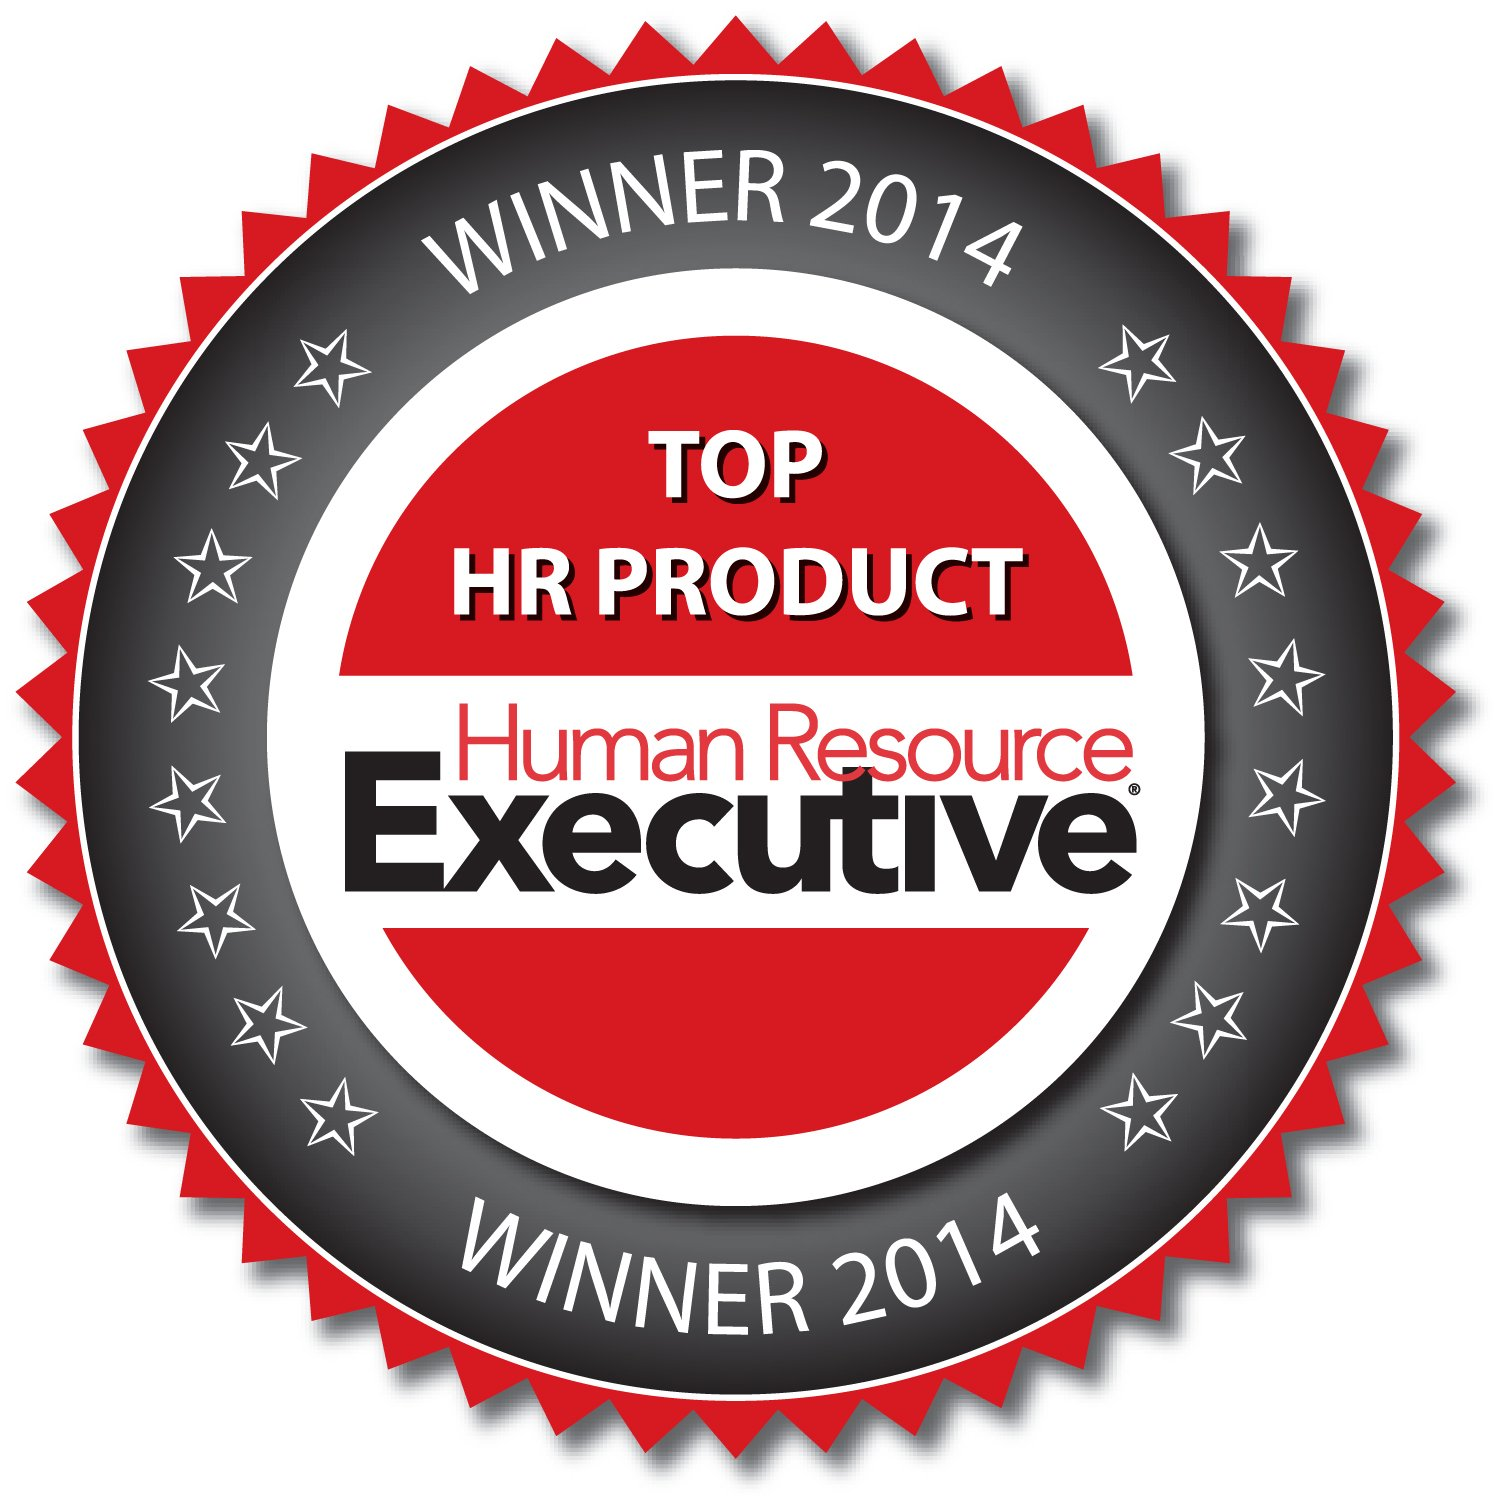 2014_HR_Product_Sealo-1